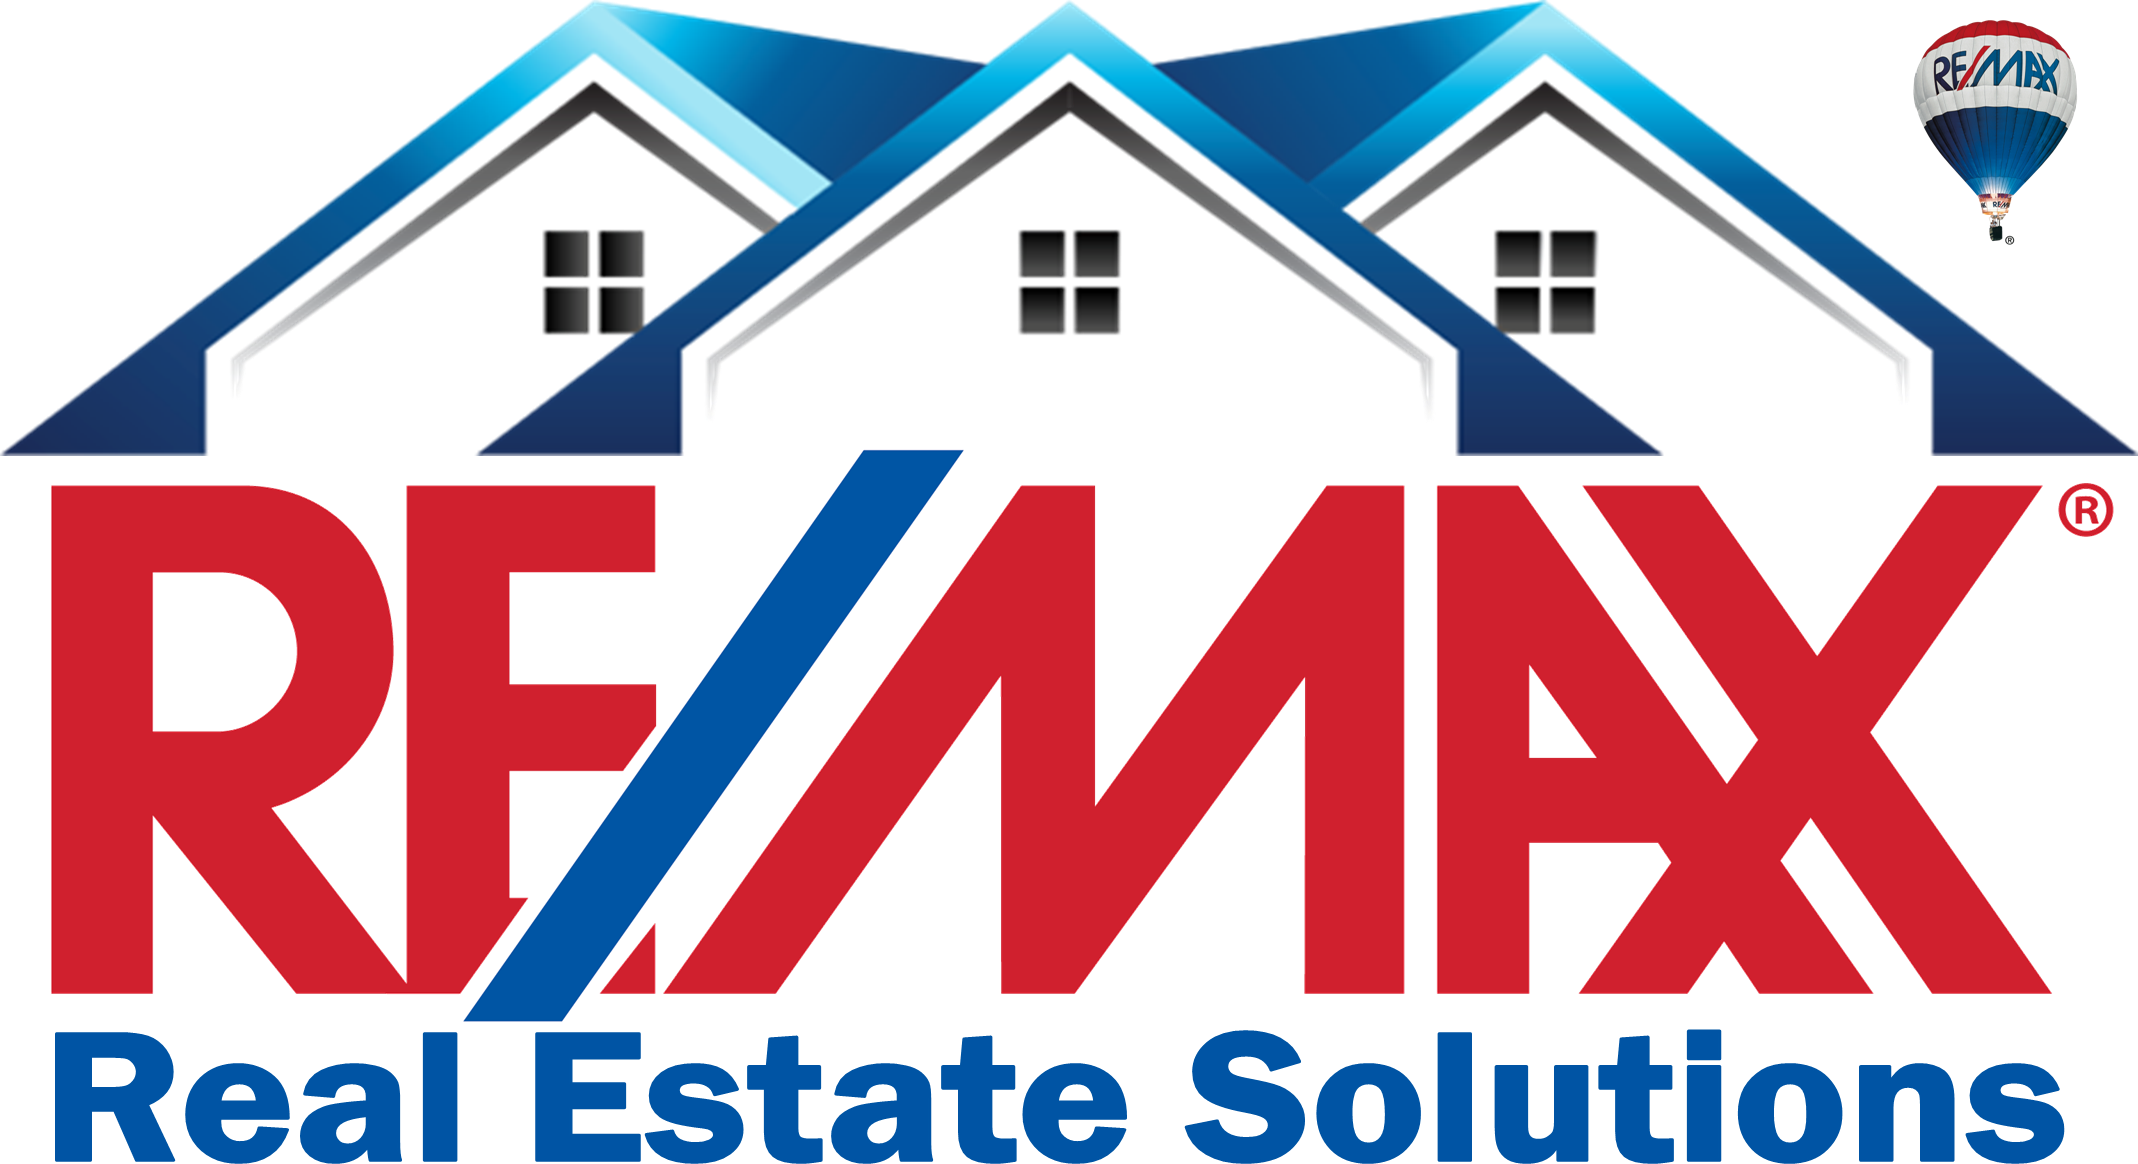 Drew Shelton - RE/MAX Real Estate Solutions